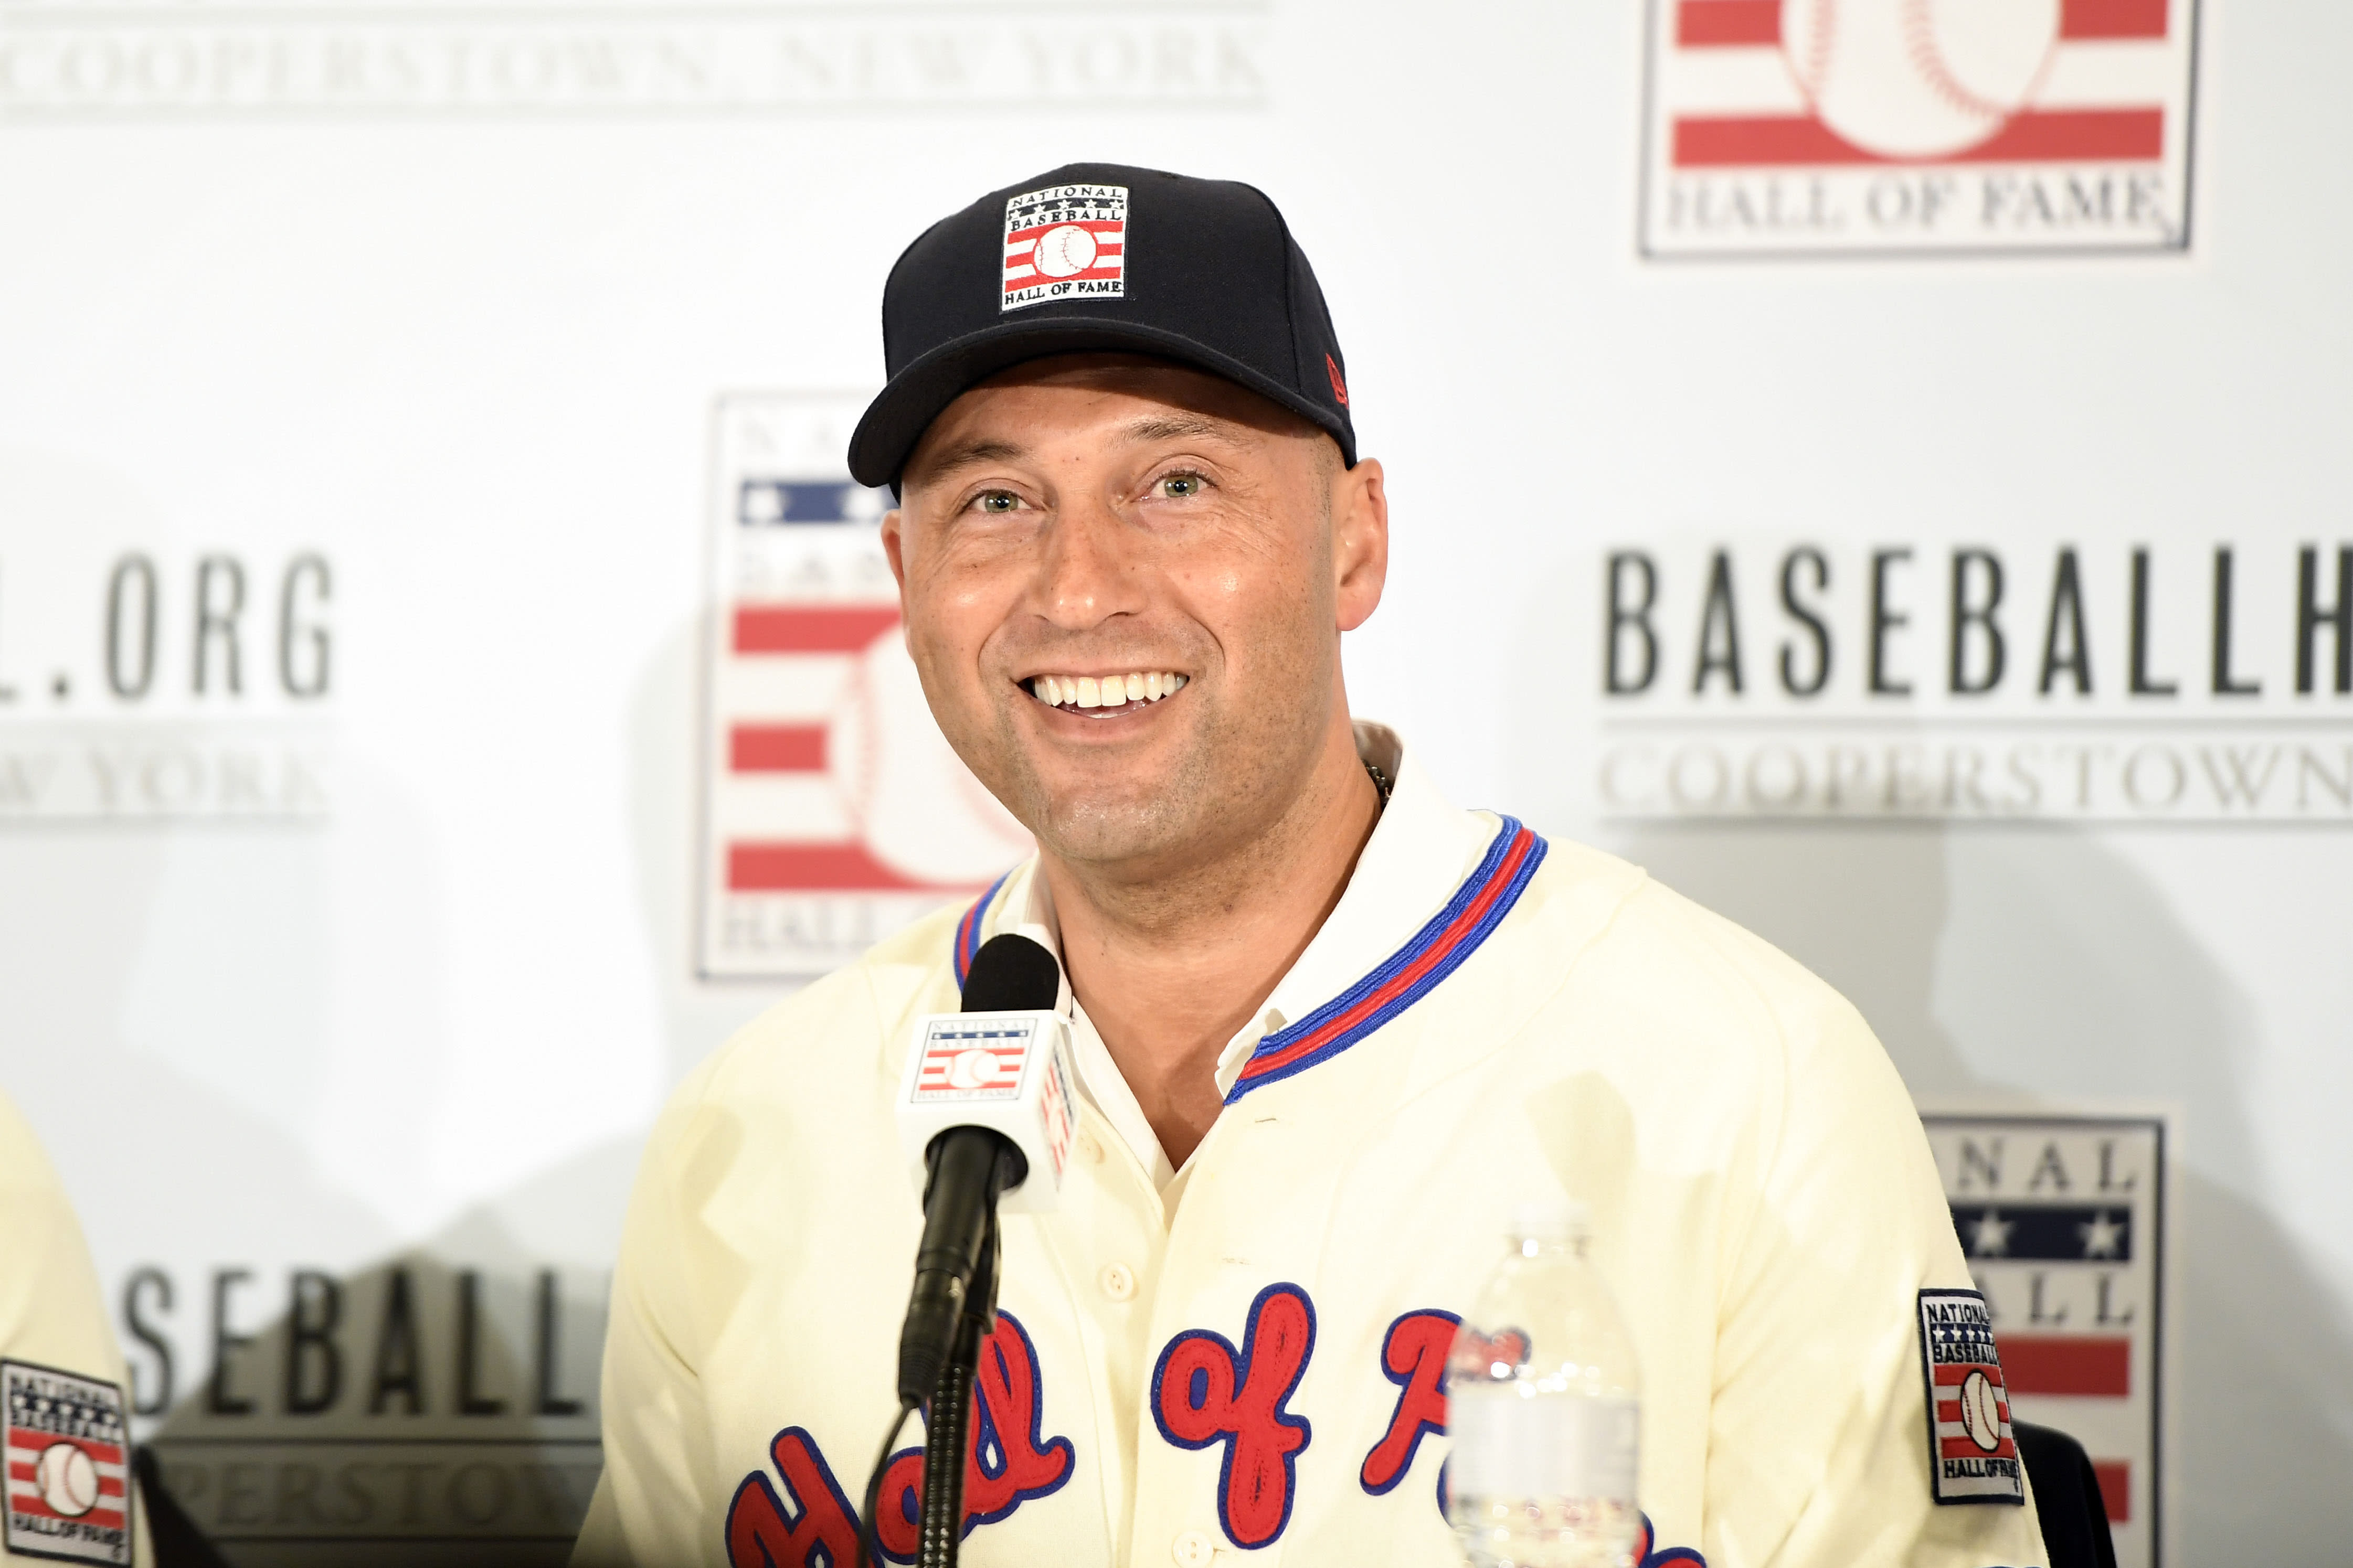 Hall of Fame: Infamous Derek Jeter ballot not revealed by BBWAA